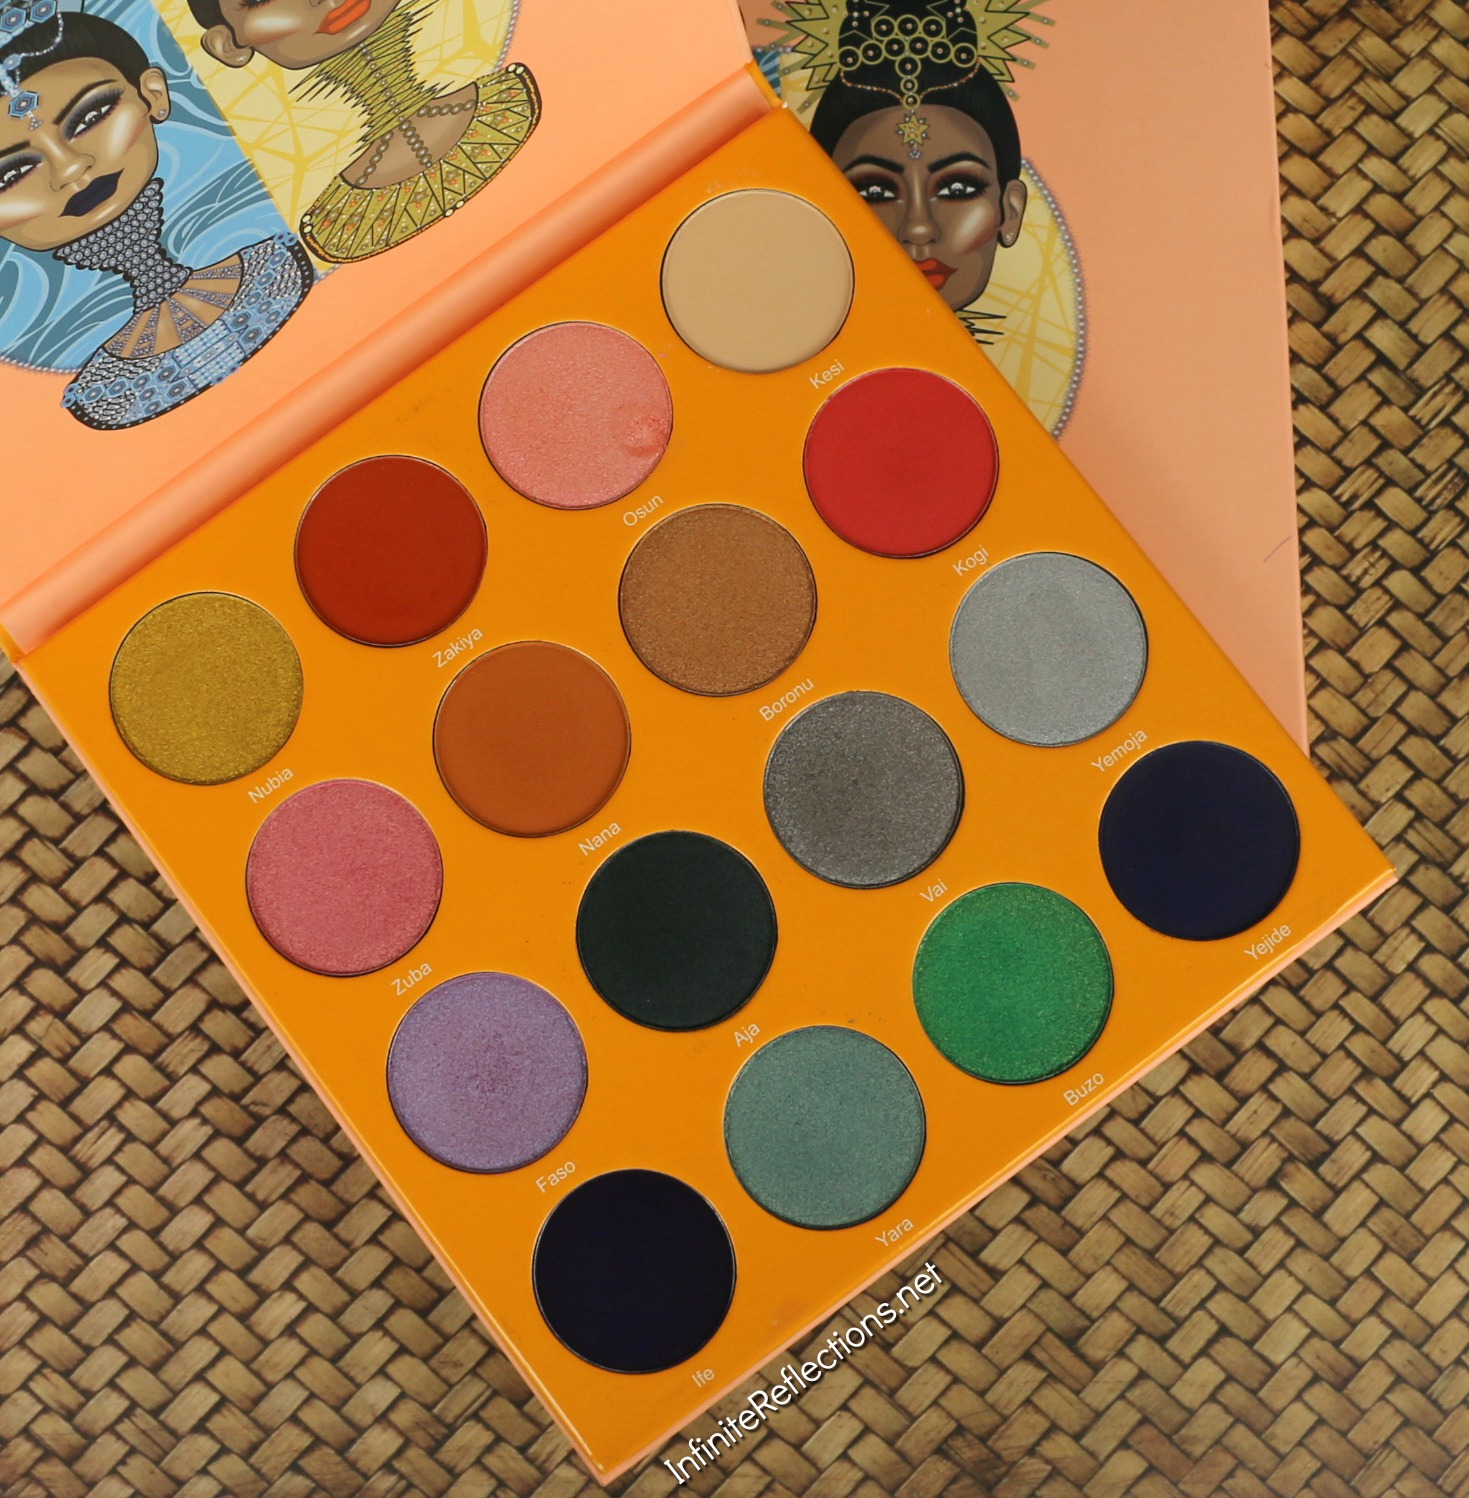 The Magic By Juvia S Palette Review Swatches